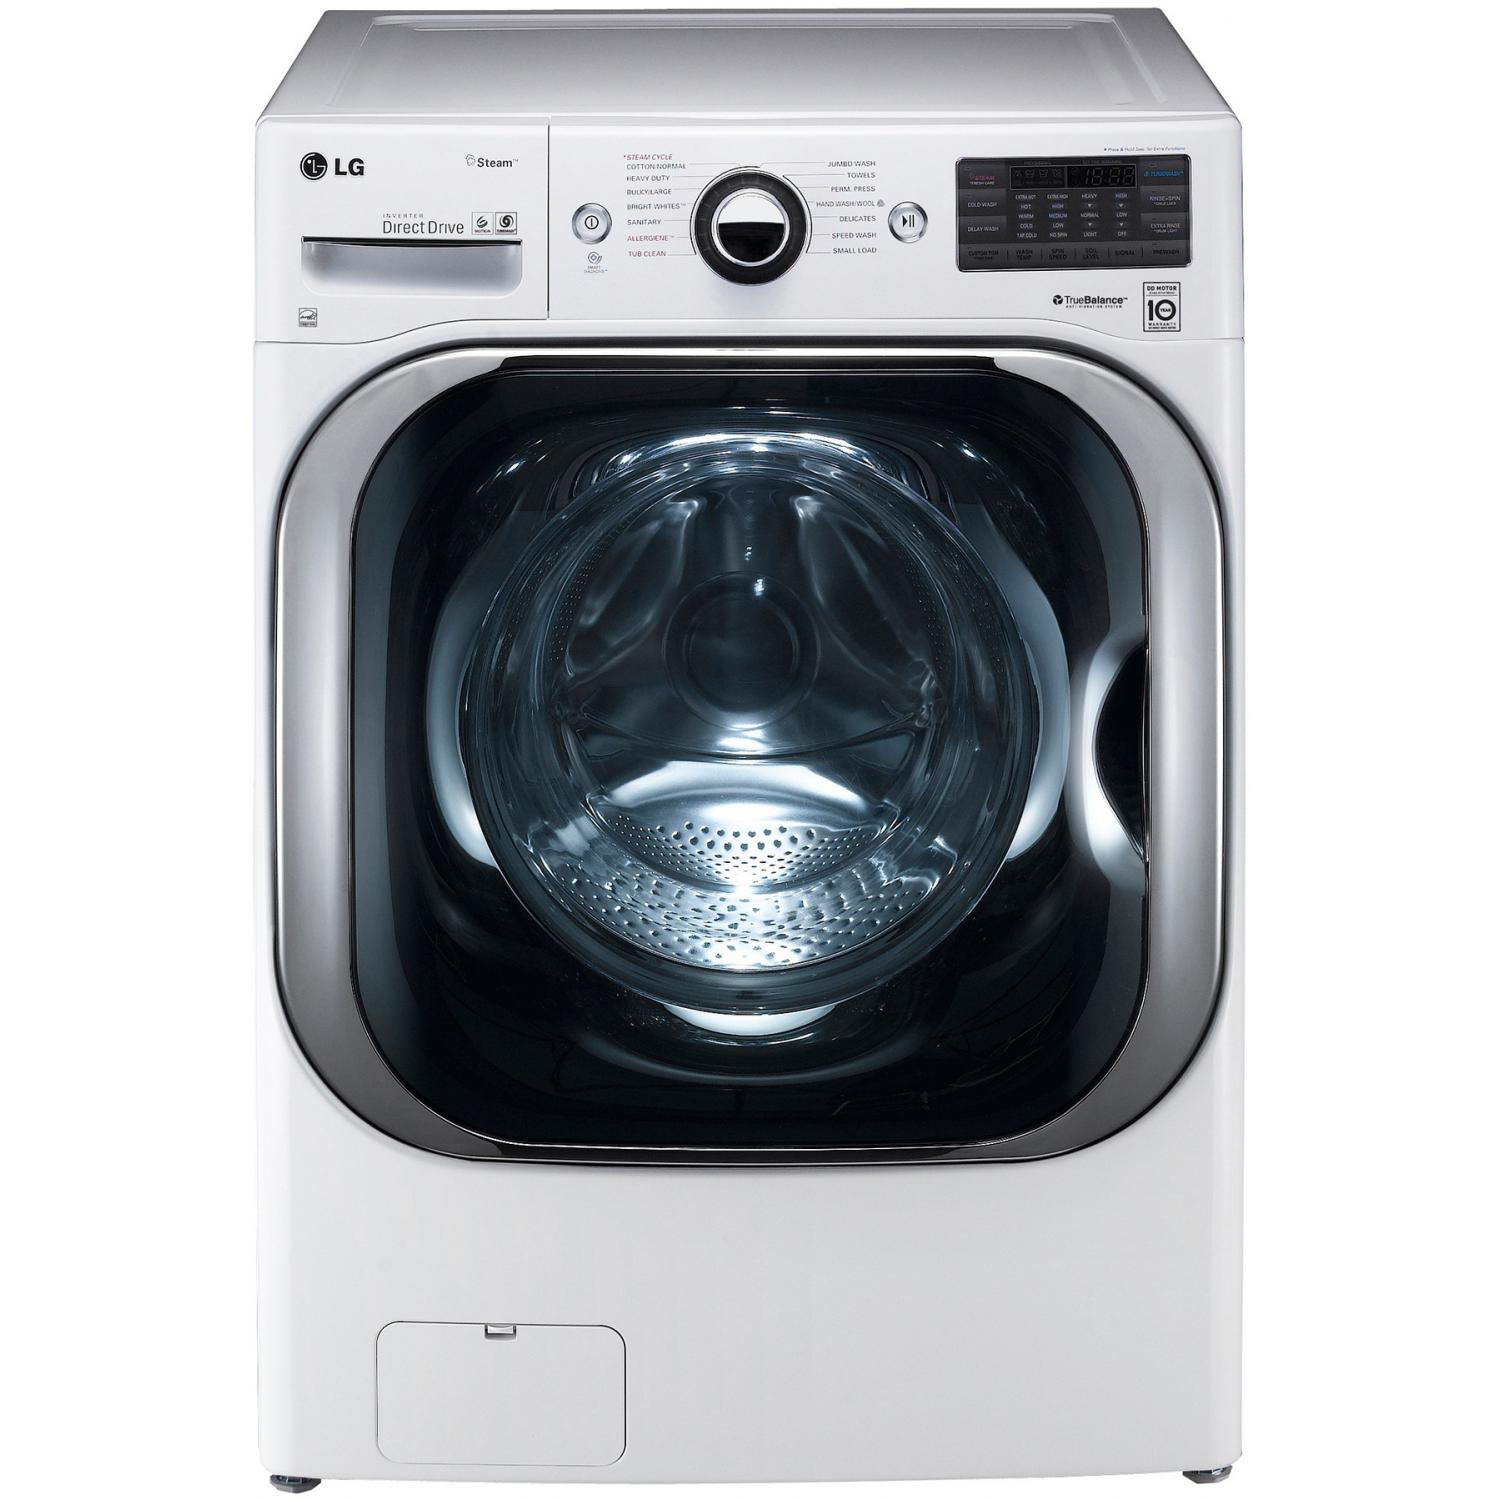 LG WM8000HWA 5.2 Cu. Ft. TurboWash Front Load Washer - White 2890294